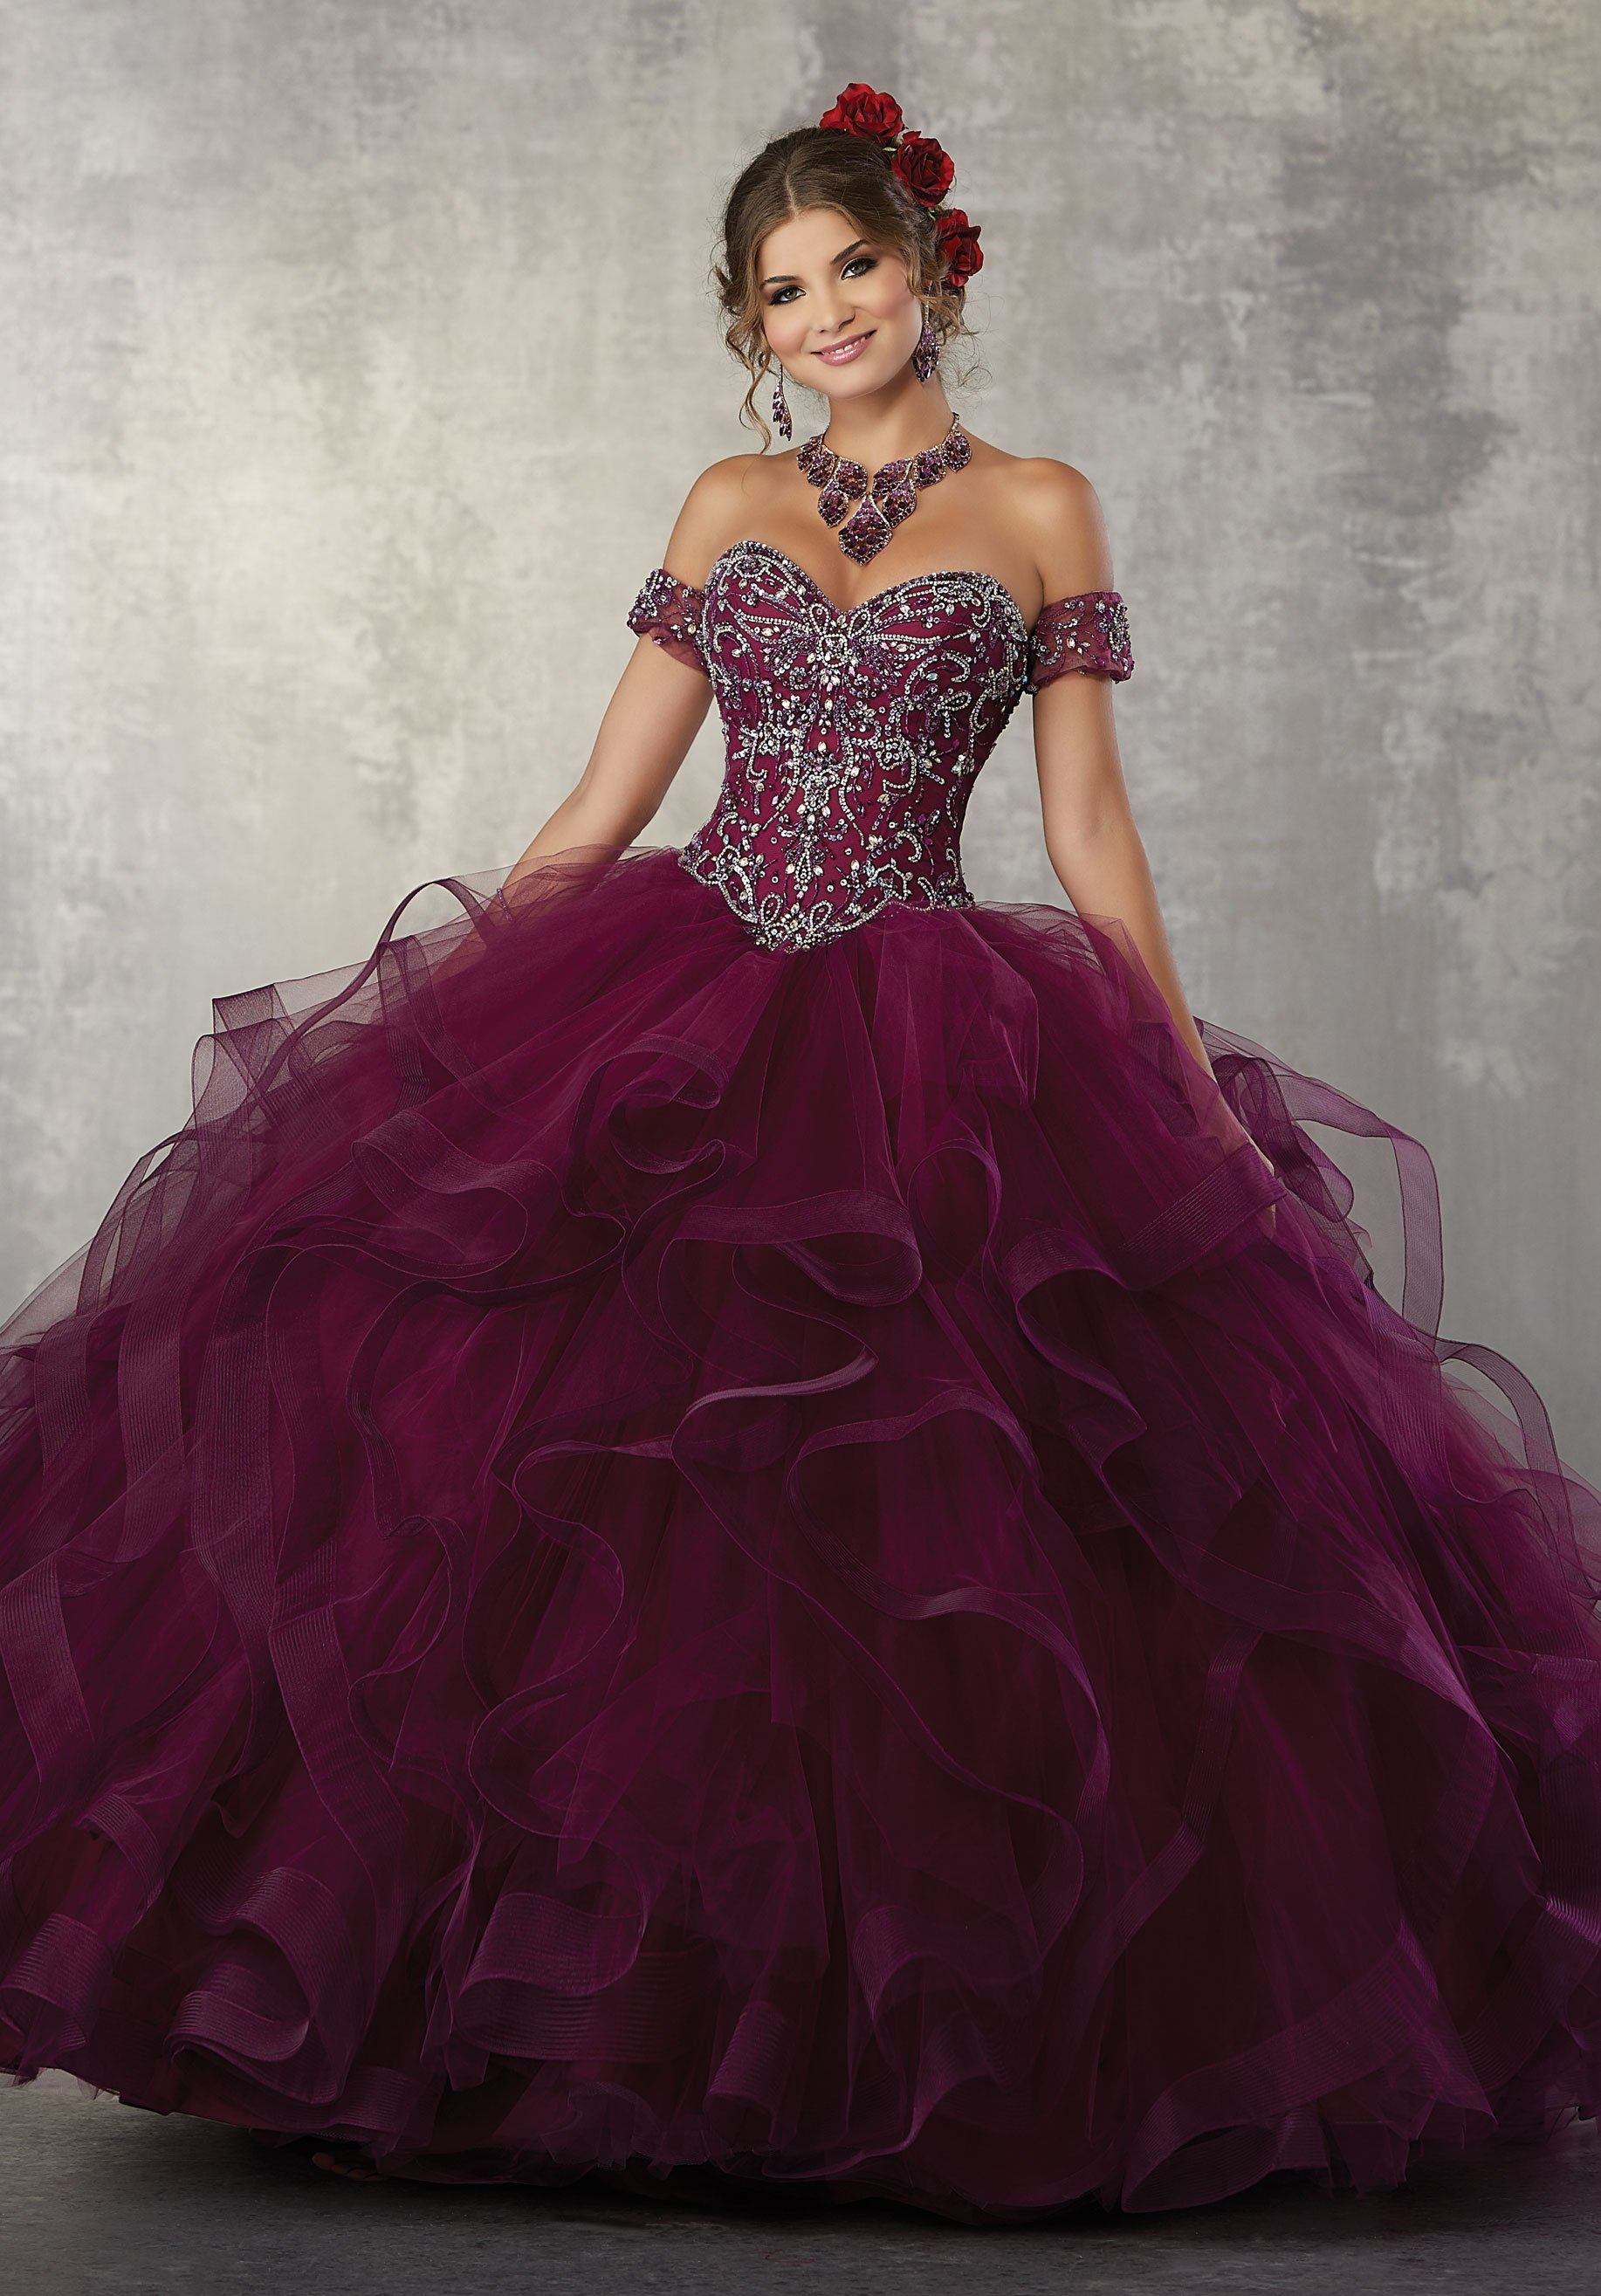 1cc8a523d28 Jeweled Strapless Quinceanera Dress by Mori Lee Vizcaya 89176 in ...